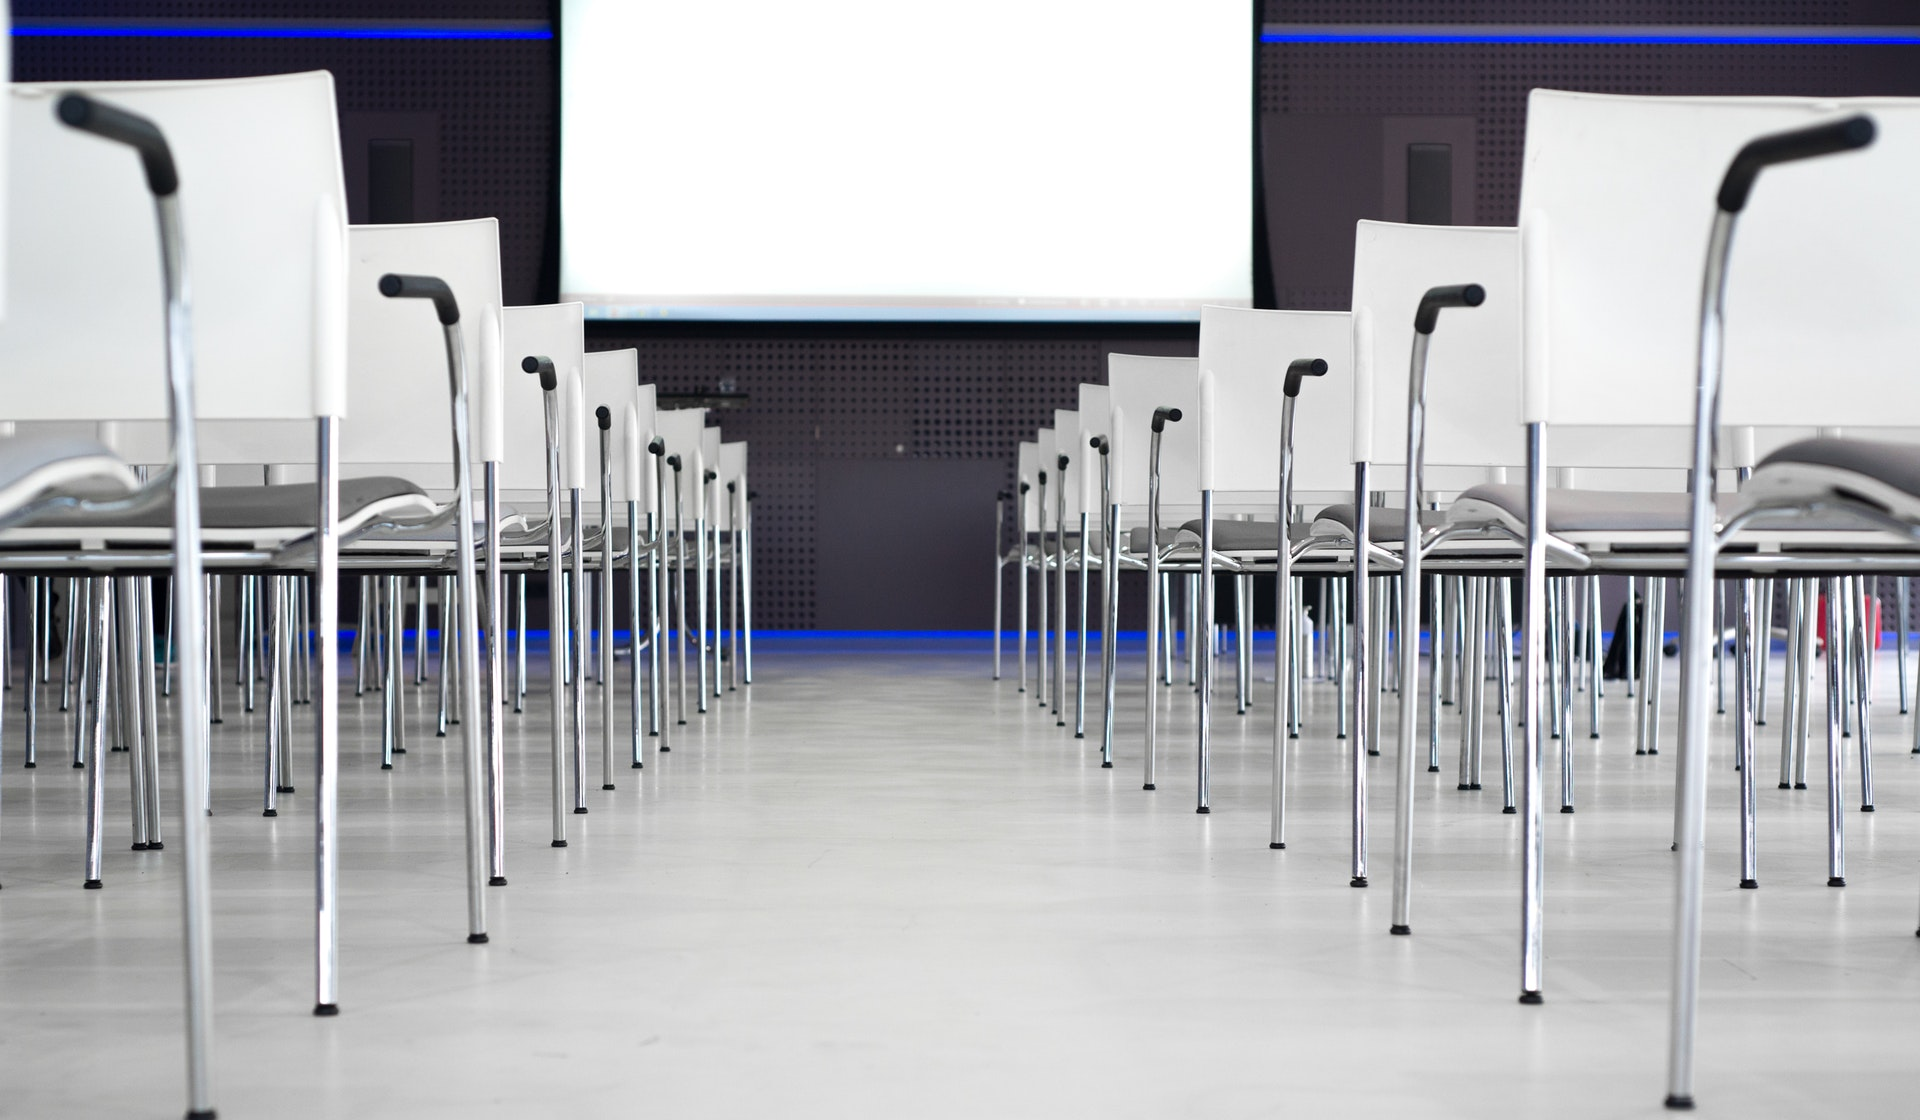 aluminum-chairs-conference-691485 (1)-1